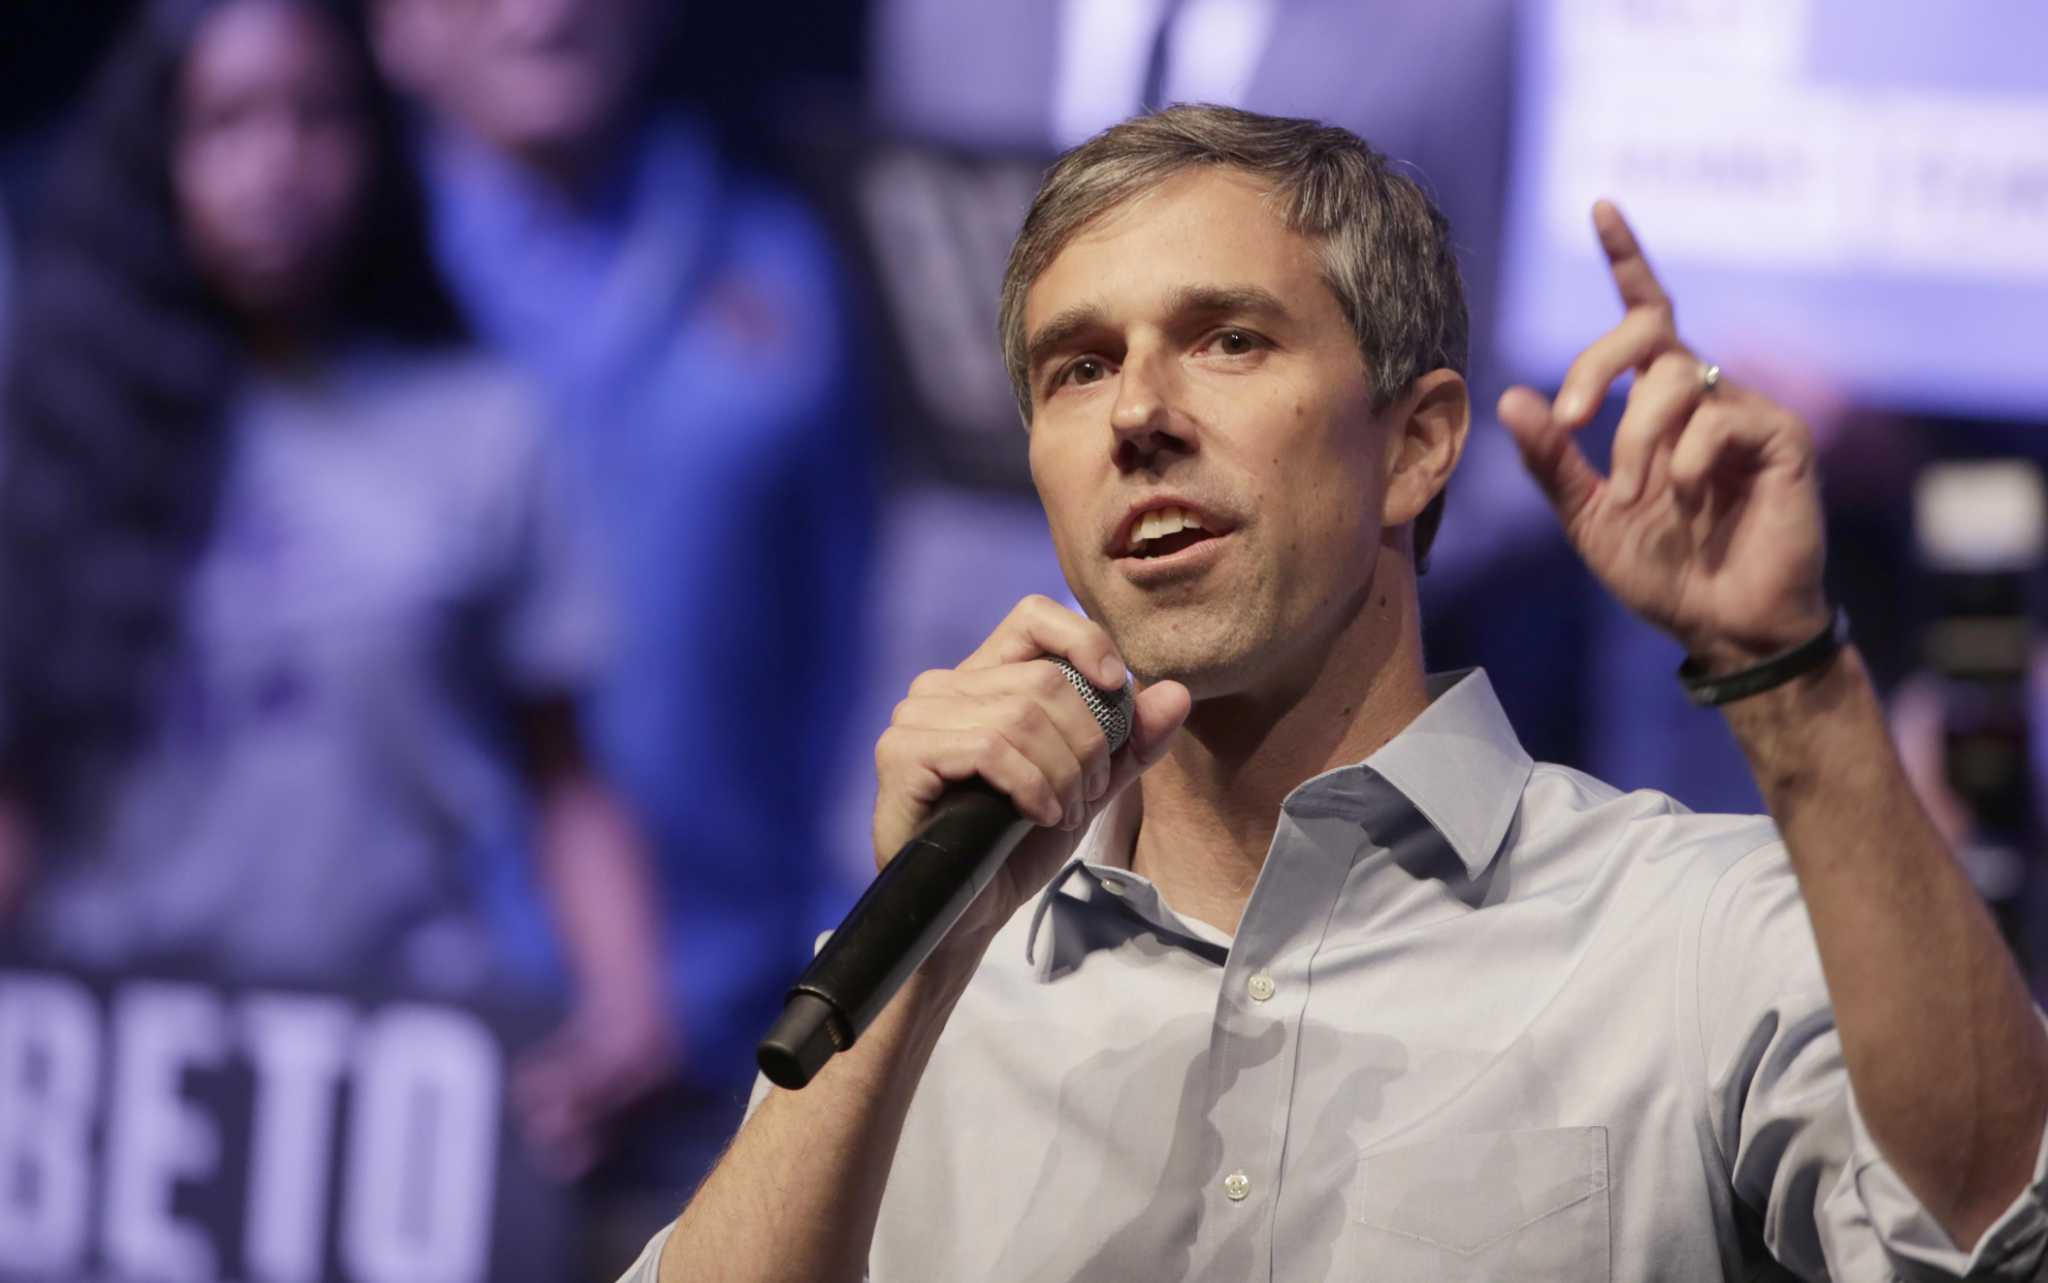 Beto O'Rourke to teach politics at Texas State University next year 6